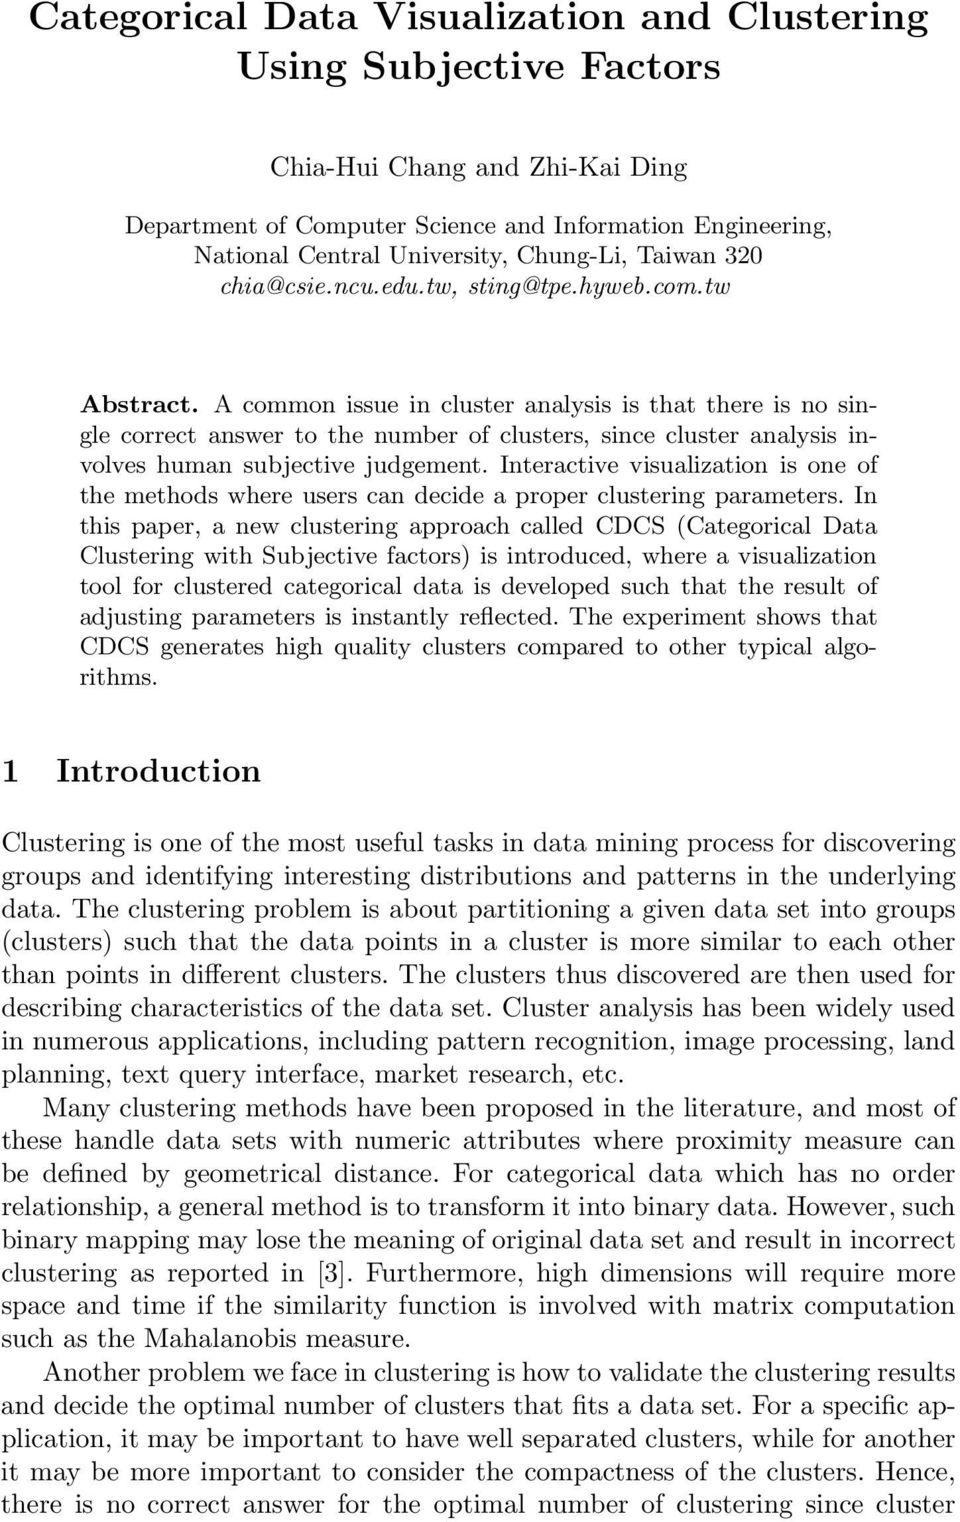 A common issue in cluster analysis is that there is no single correct answer to the number of clusters, since cluster analysis involves human subjective judgement.